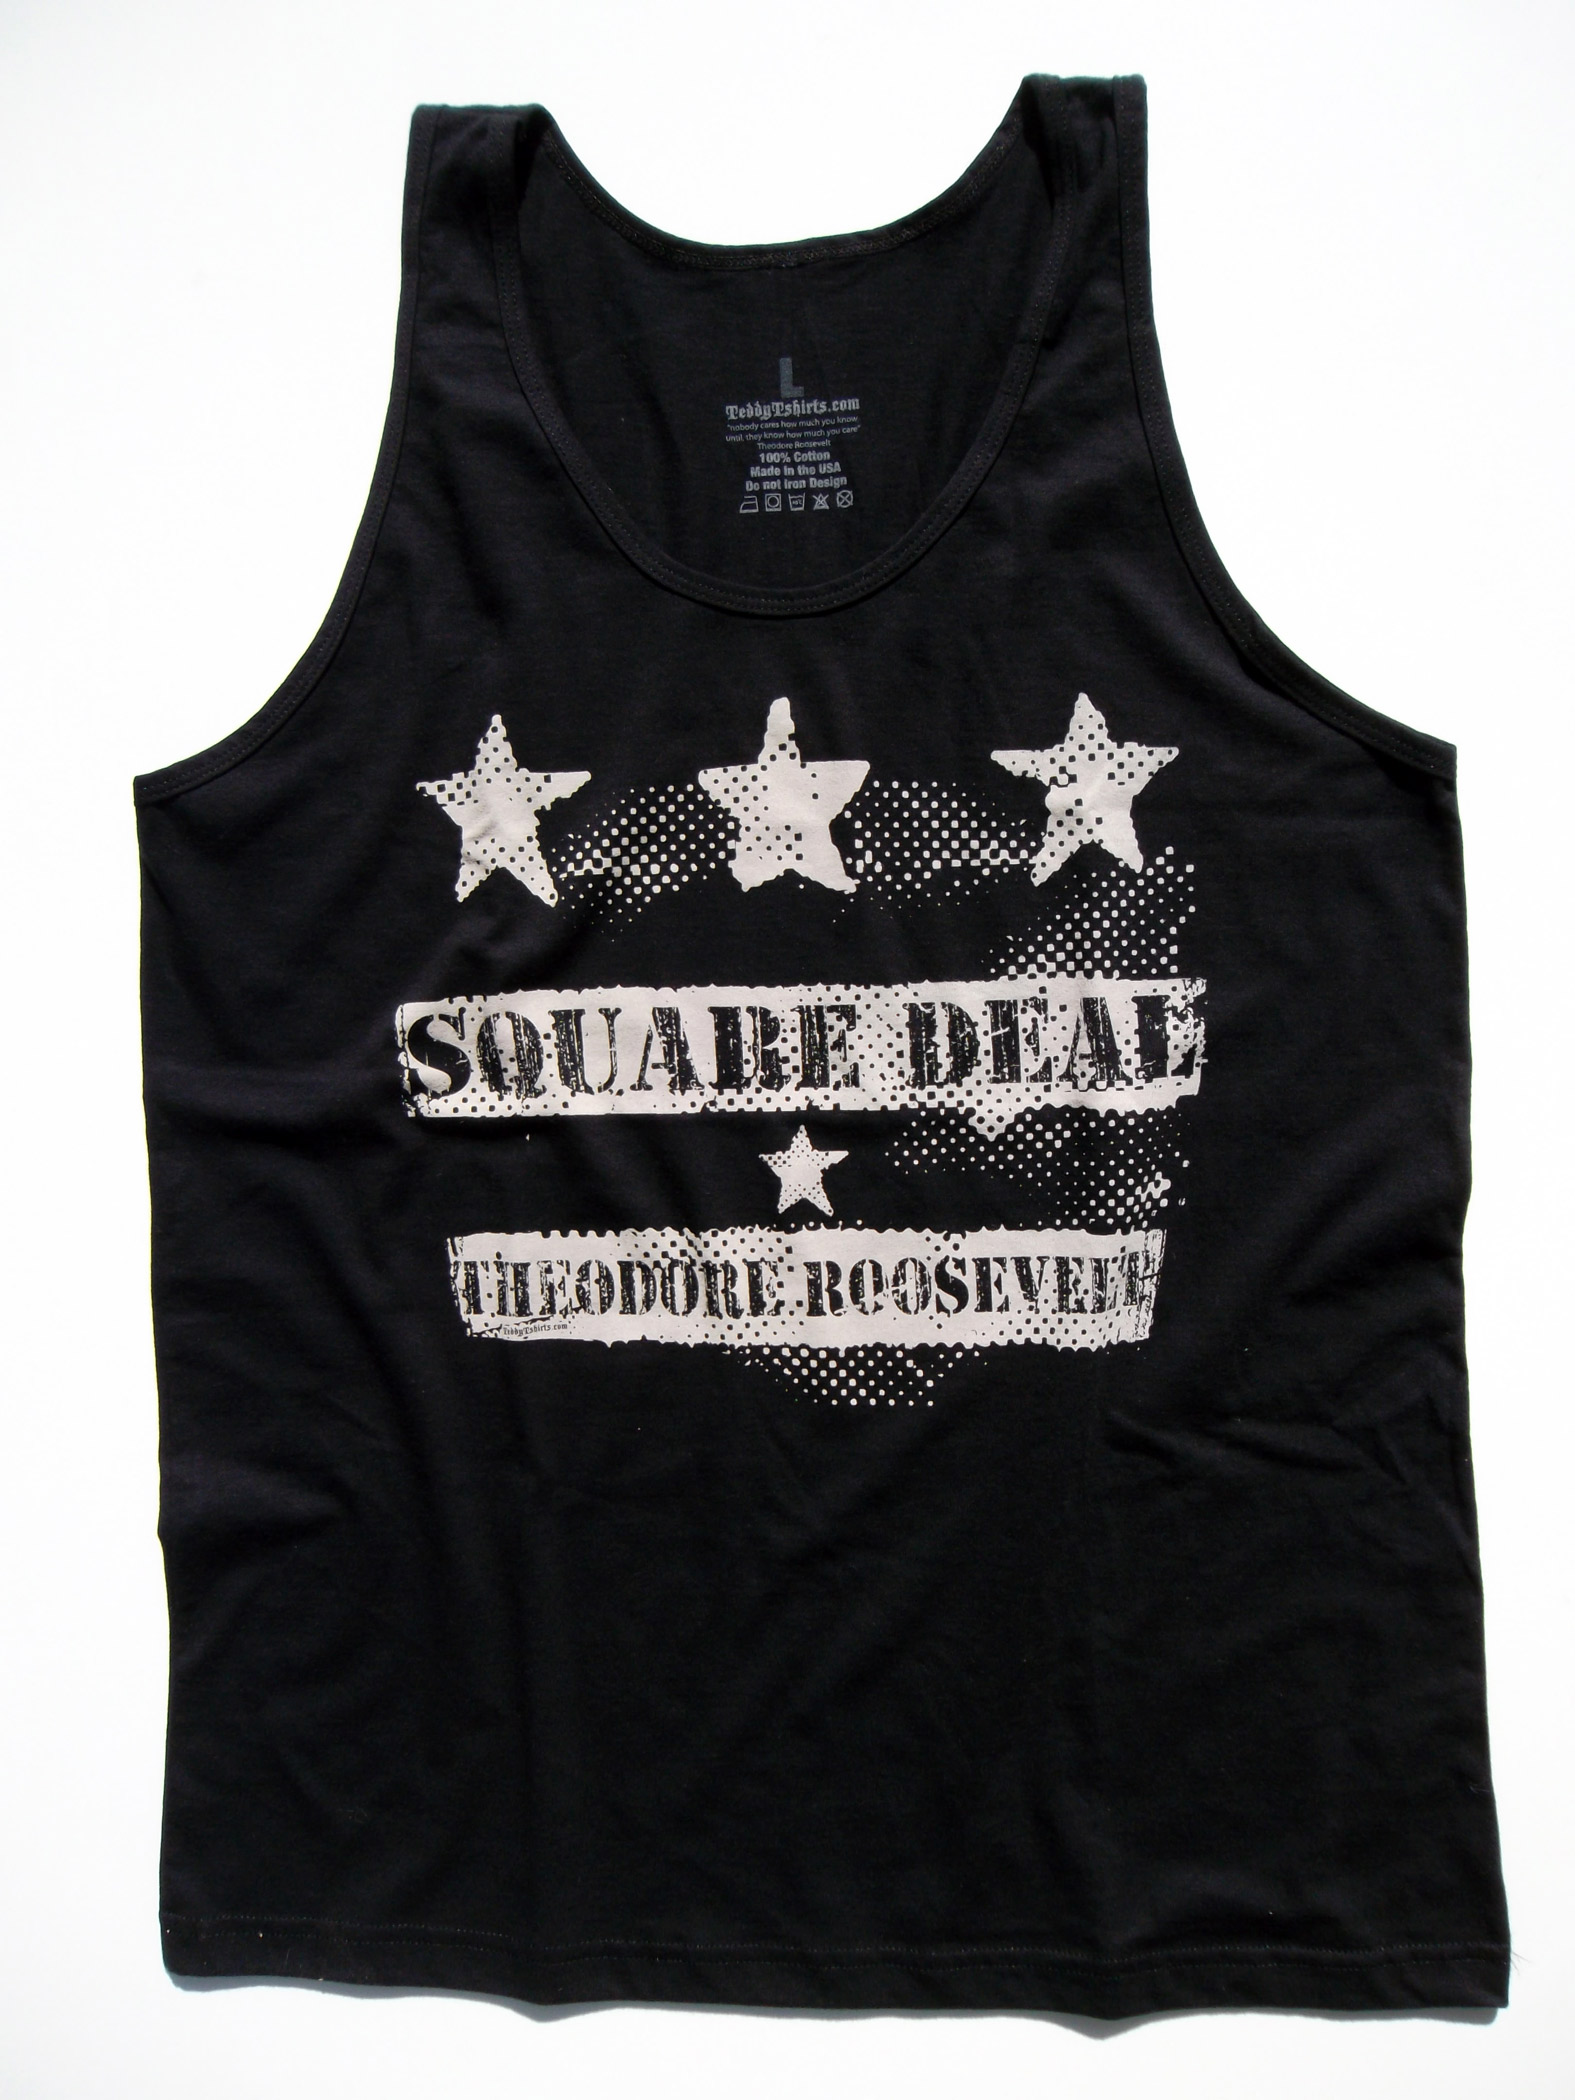 Square-Deal-Unisex-Black-Tank by TeddyTshirts.com